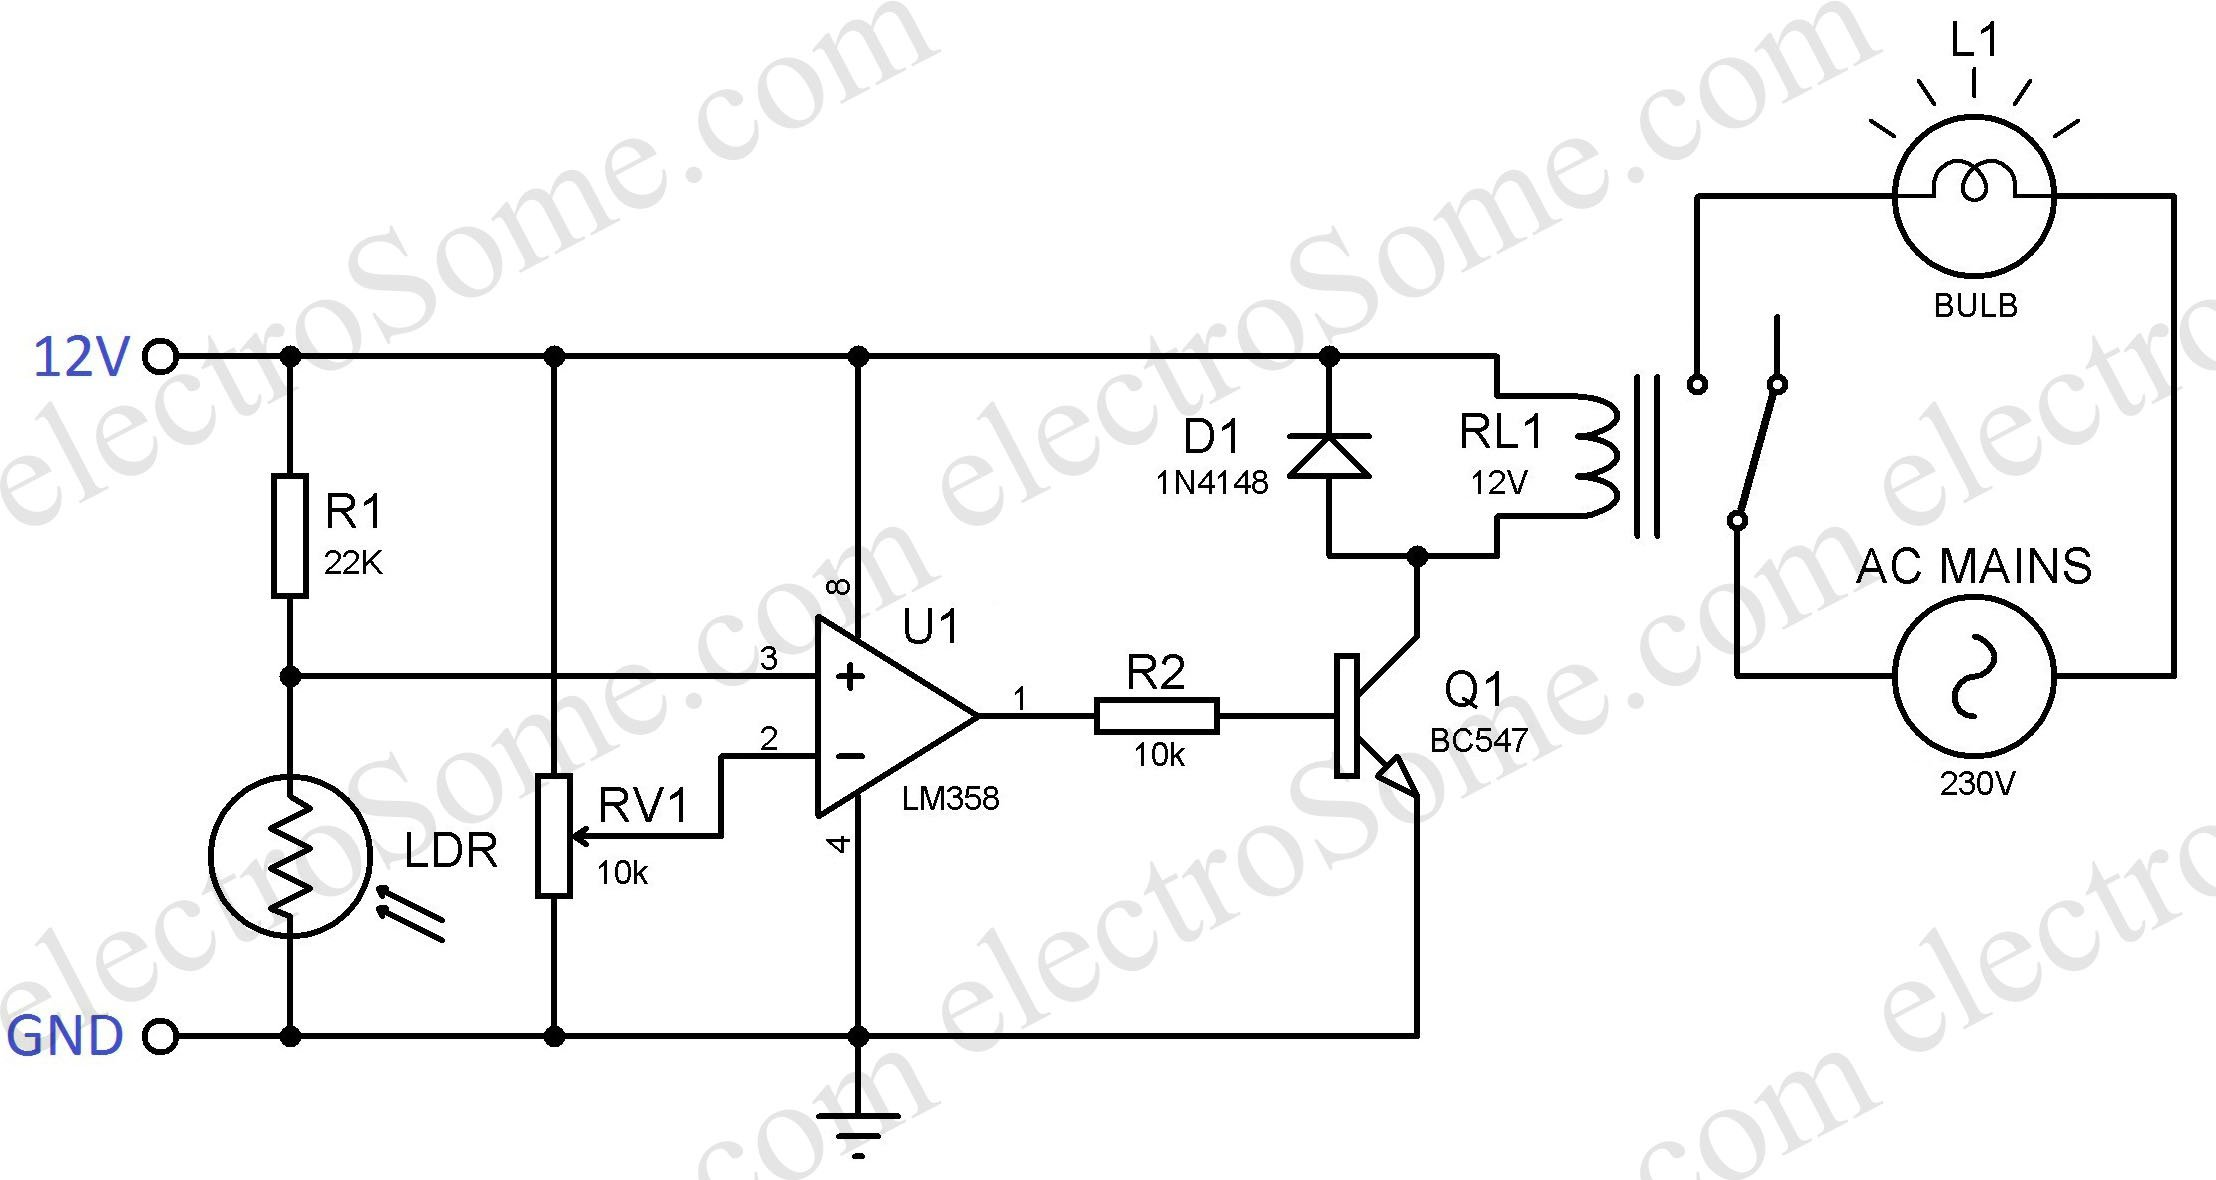 Lamp Circuit Diagram 12v Solar Led Night Activated Lamp Circuit More Simple Light  Switch Diagram Automatic Light Switch Circuit Schematic